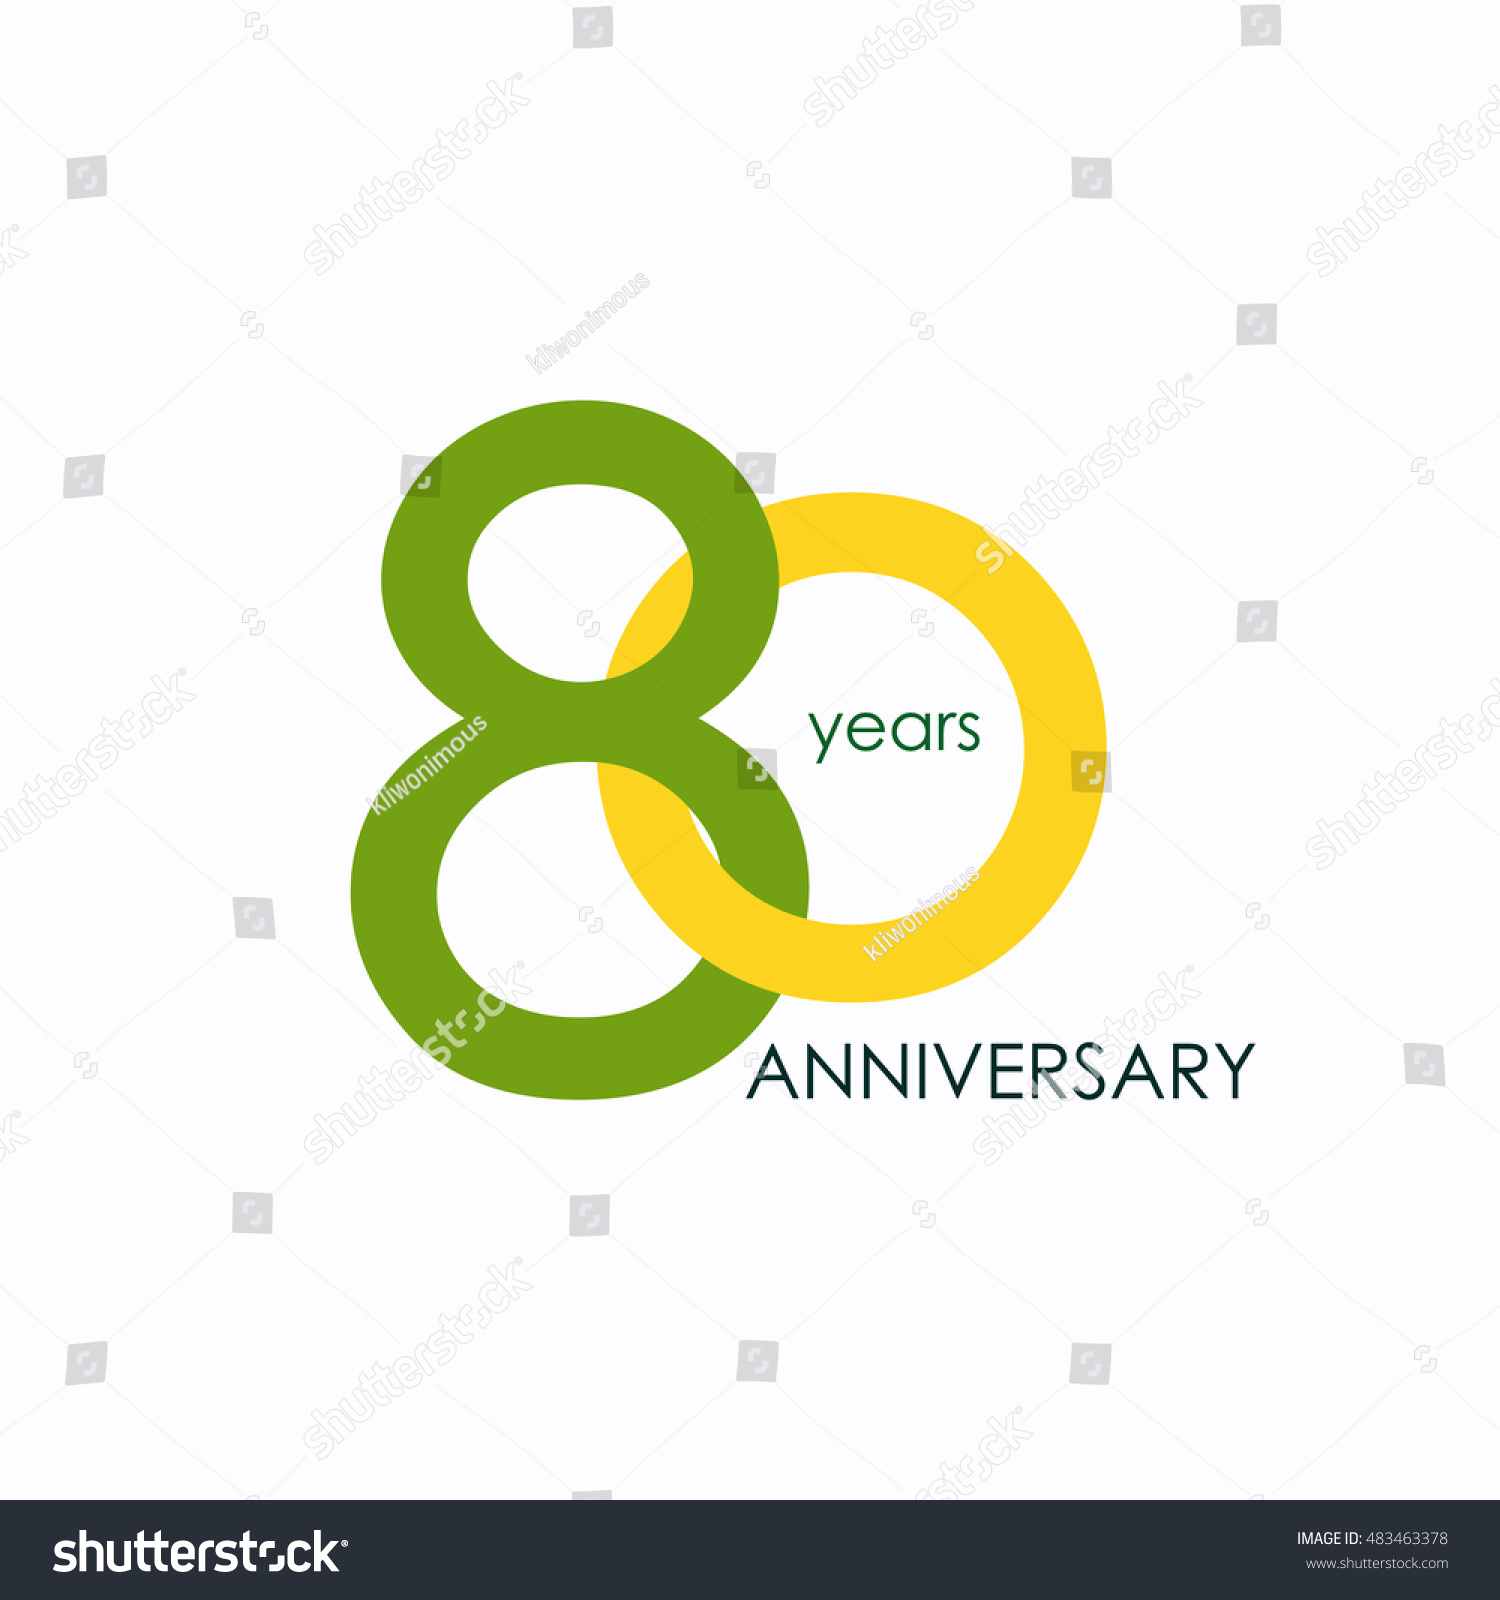 80 Years Anniversary Signs Symbols Which Stock Vector Royalty Free